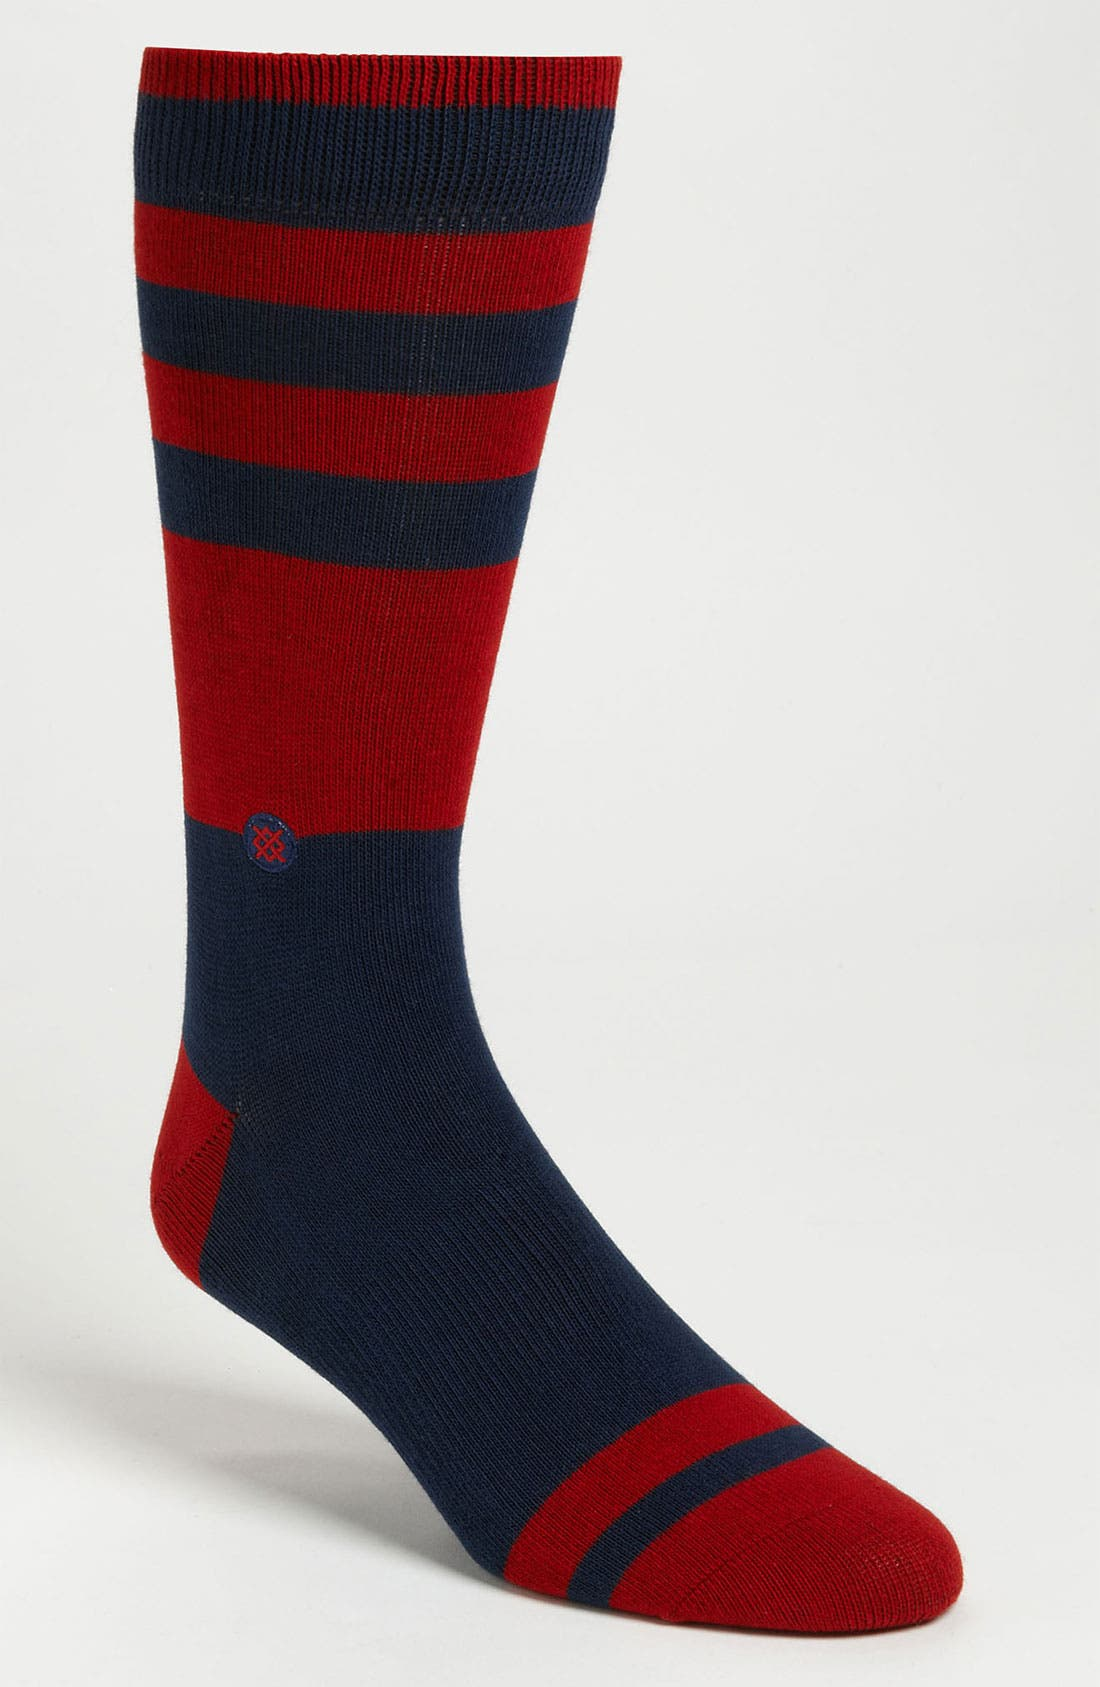 Main Image - Stance 'Atlantis' Socks